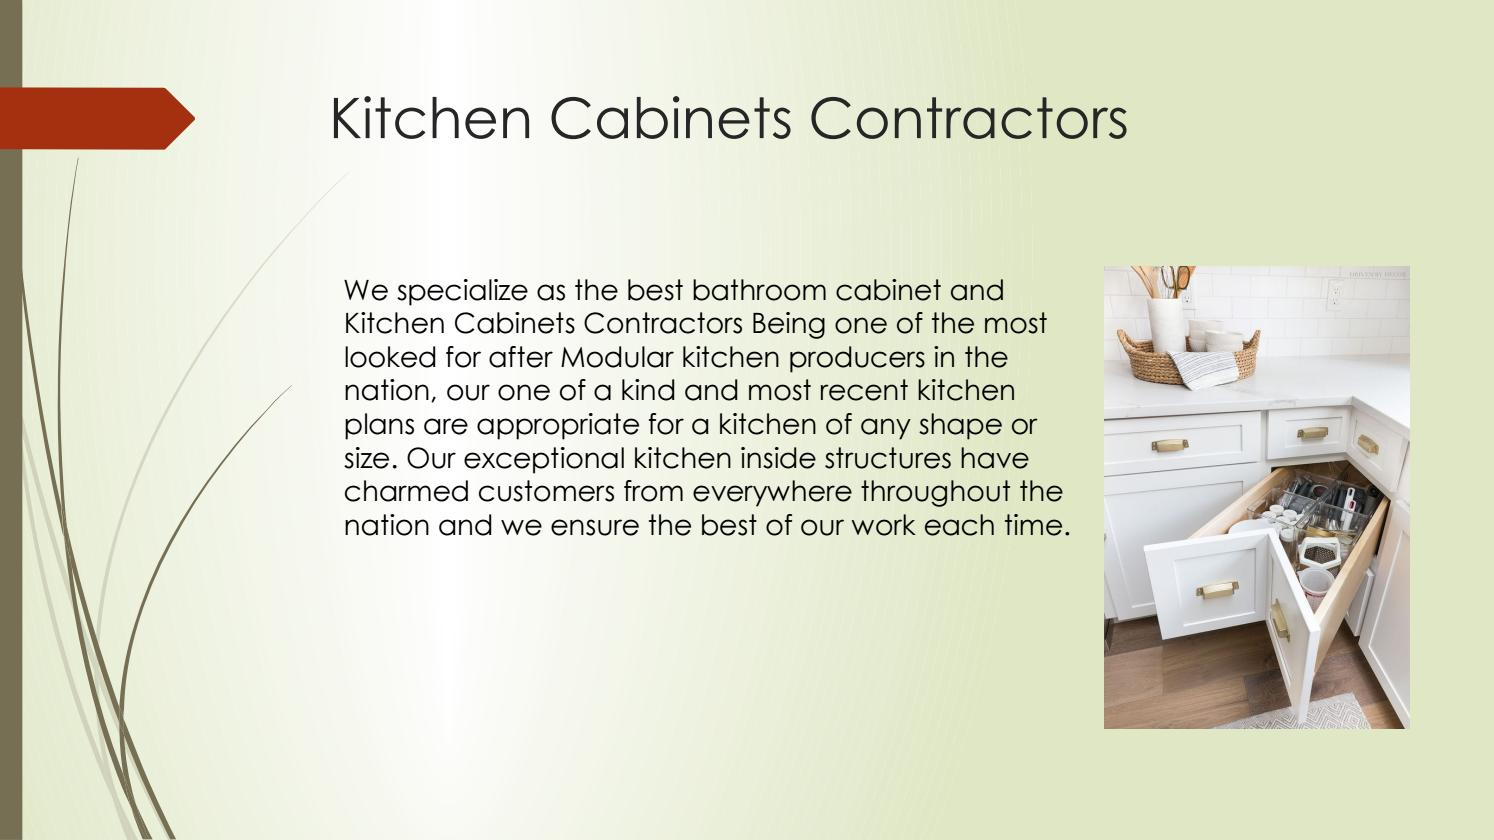 Kitchen Cabinets Contractors Arlington Heights Il By Hollie Taylor Issuu